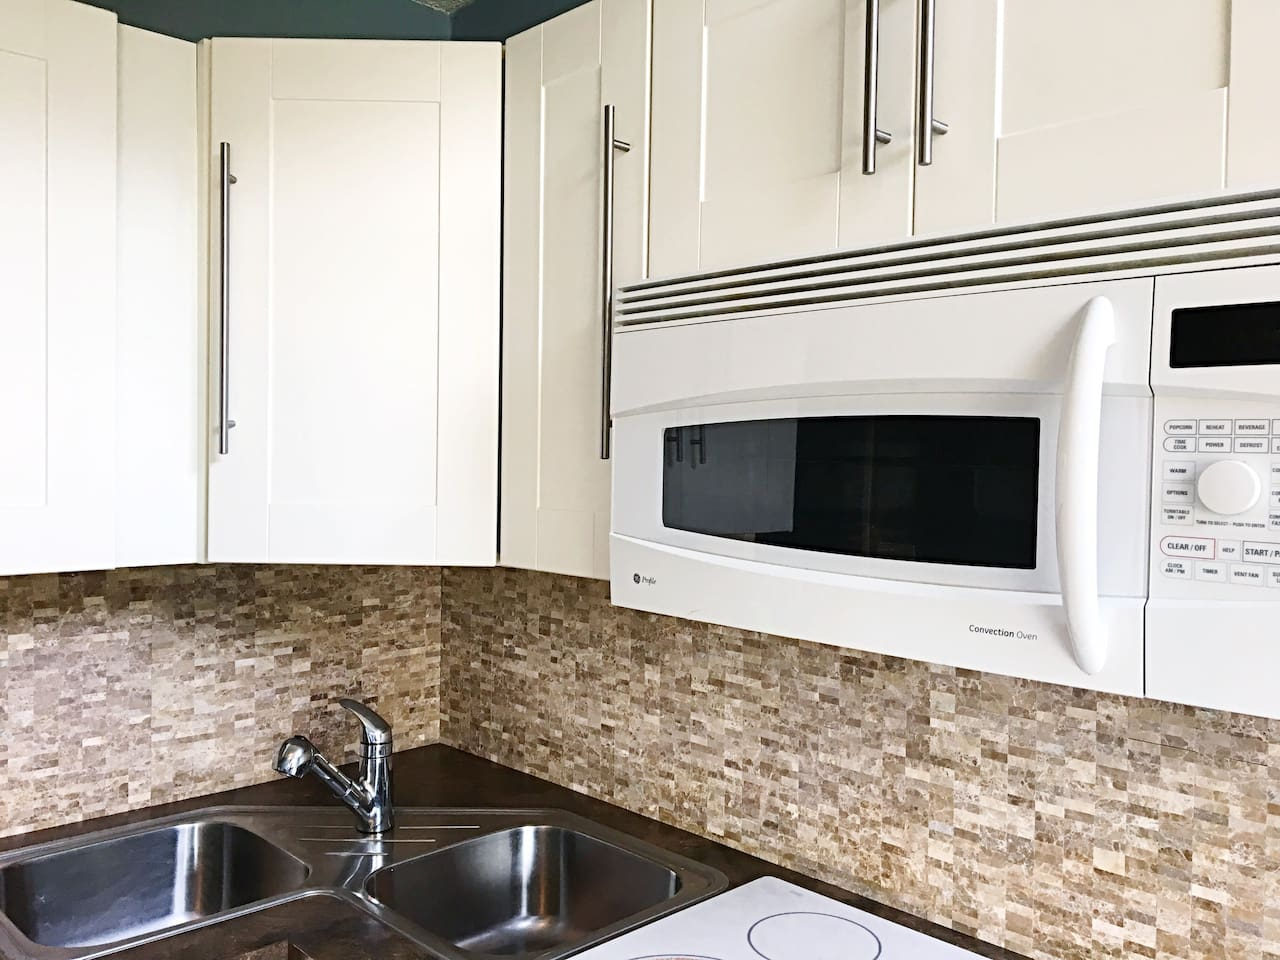 Kitchen with double sink, glass top range, and convection oven.